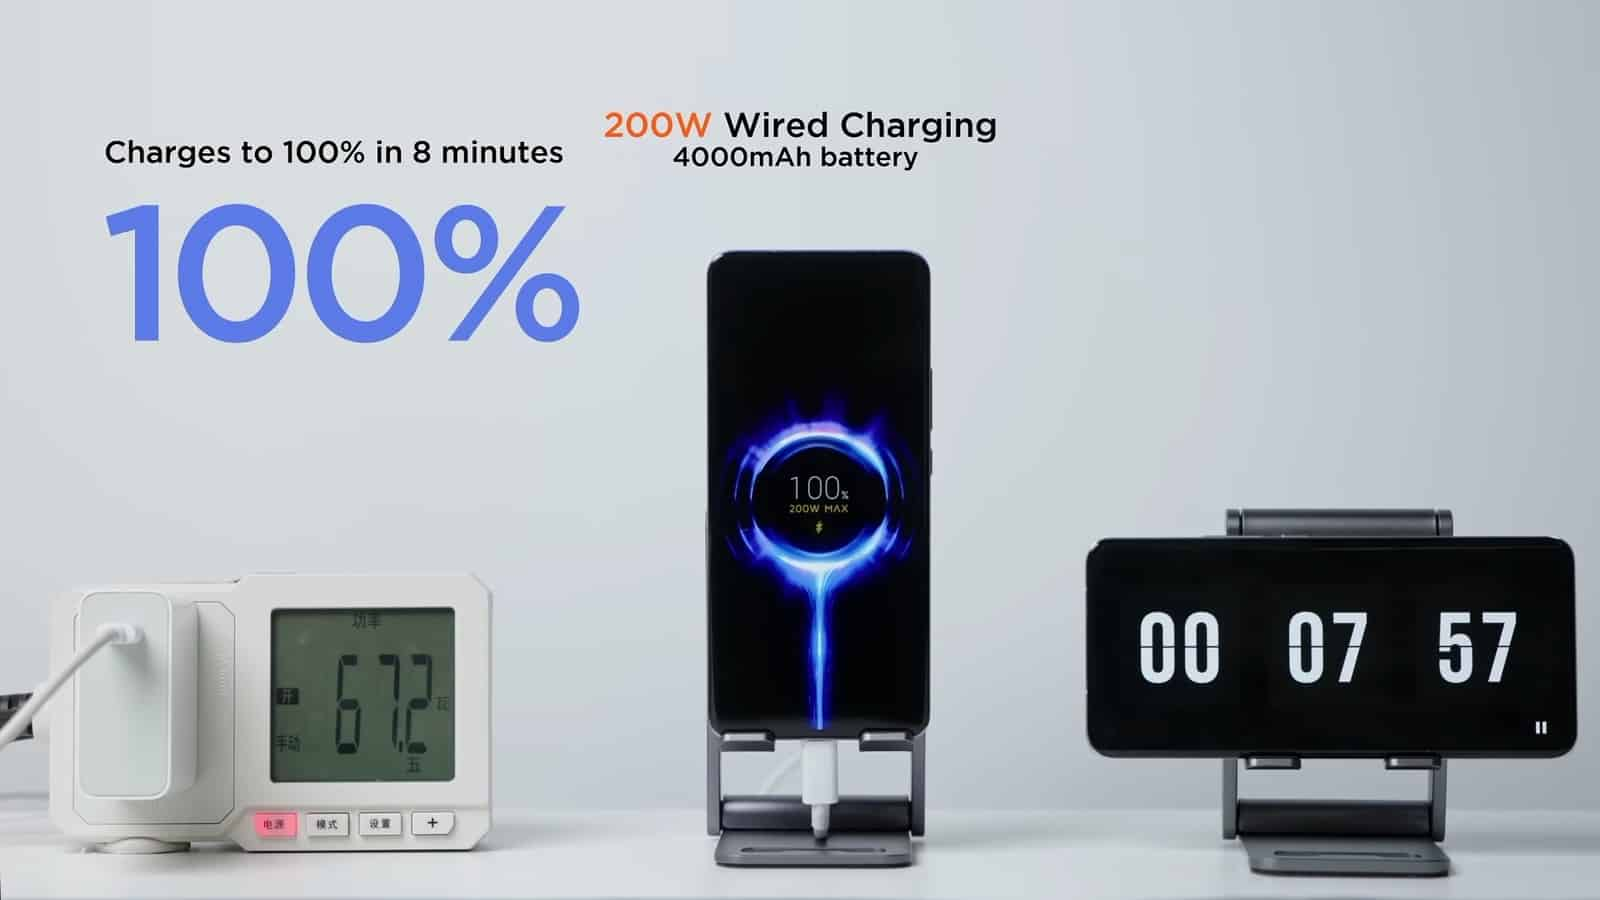 Xiaomi's 200W Charging Is Not Great For Battery Health